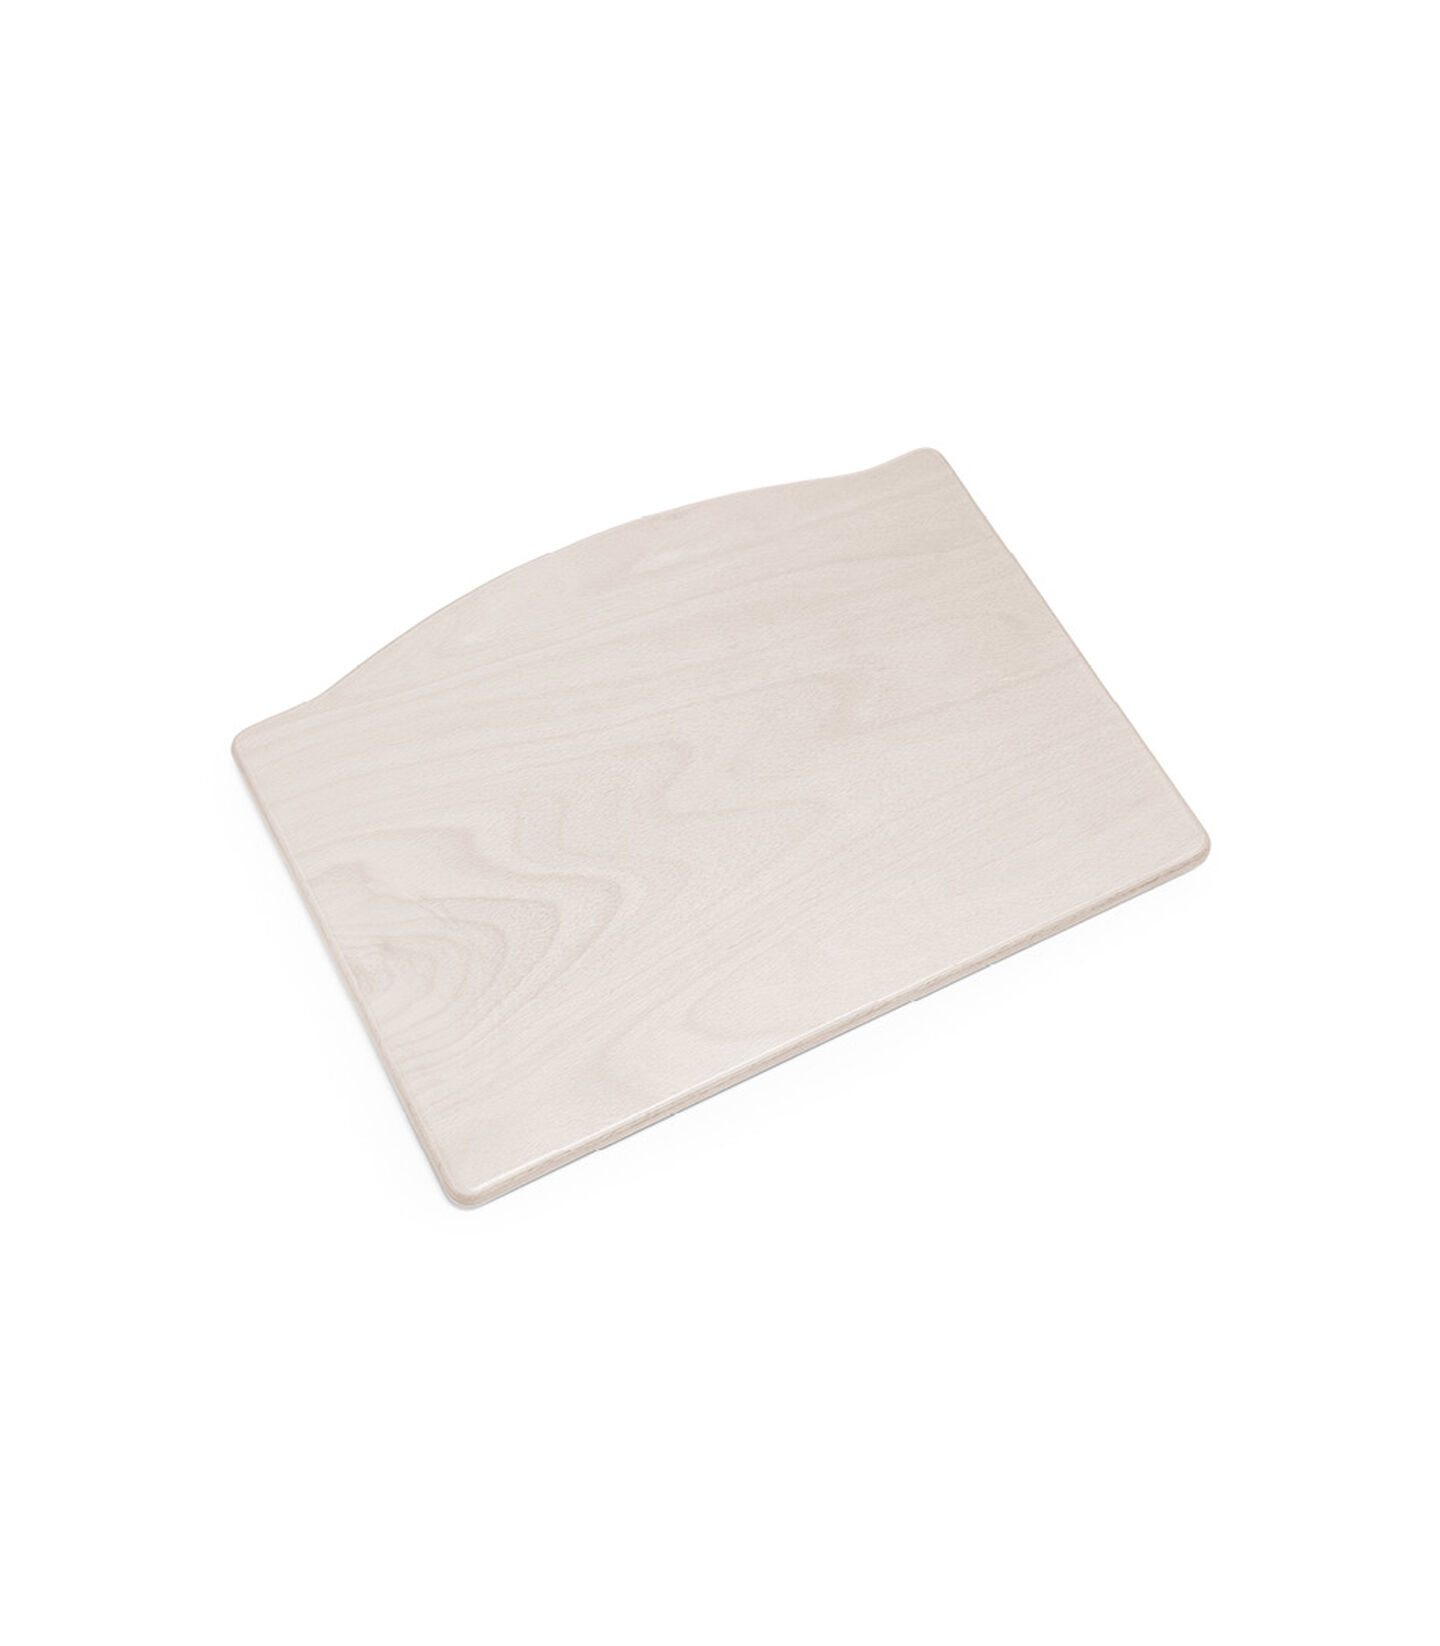 Tripp Trapp® Footplate Bianco Calce, Bianco Calce, mainview view 2